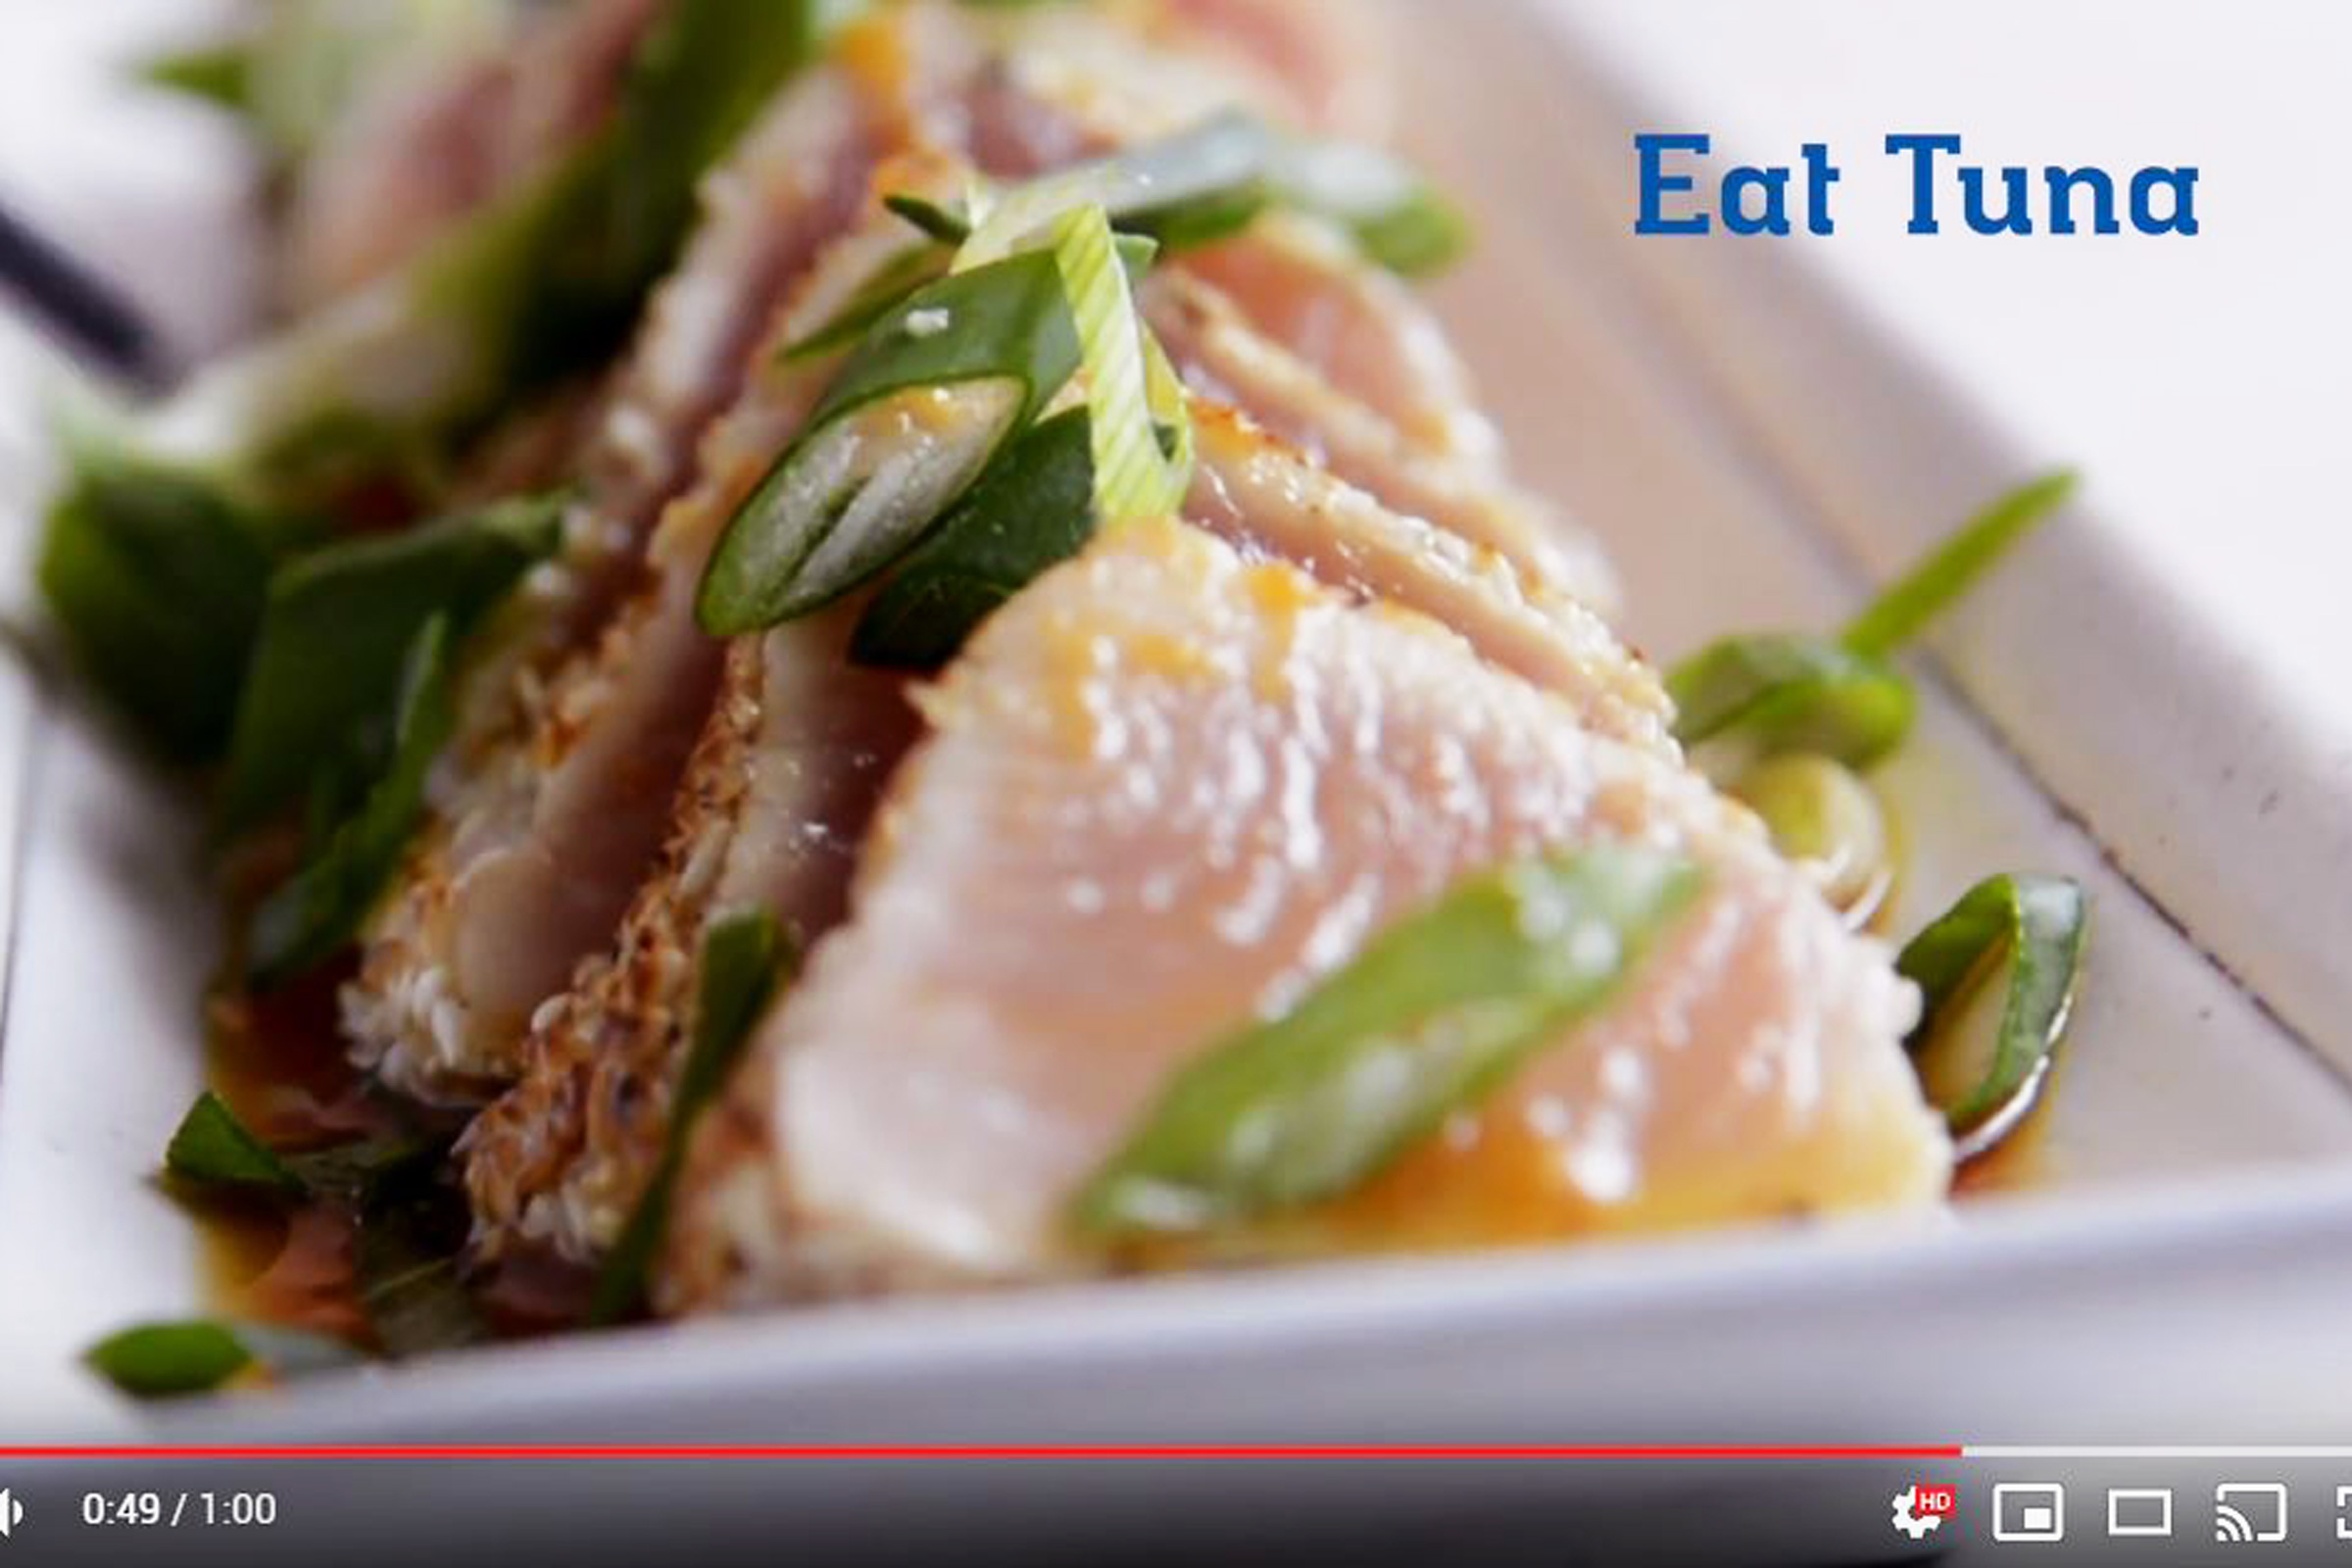 Seared albacore tuna recipe